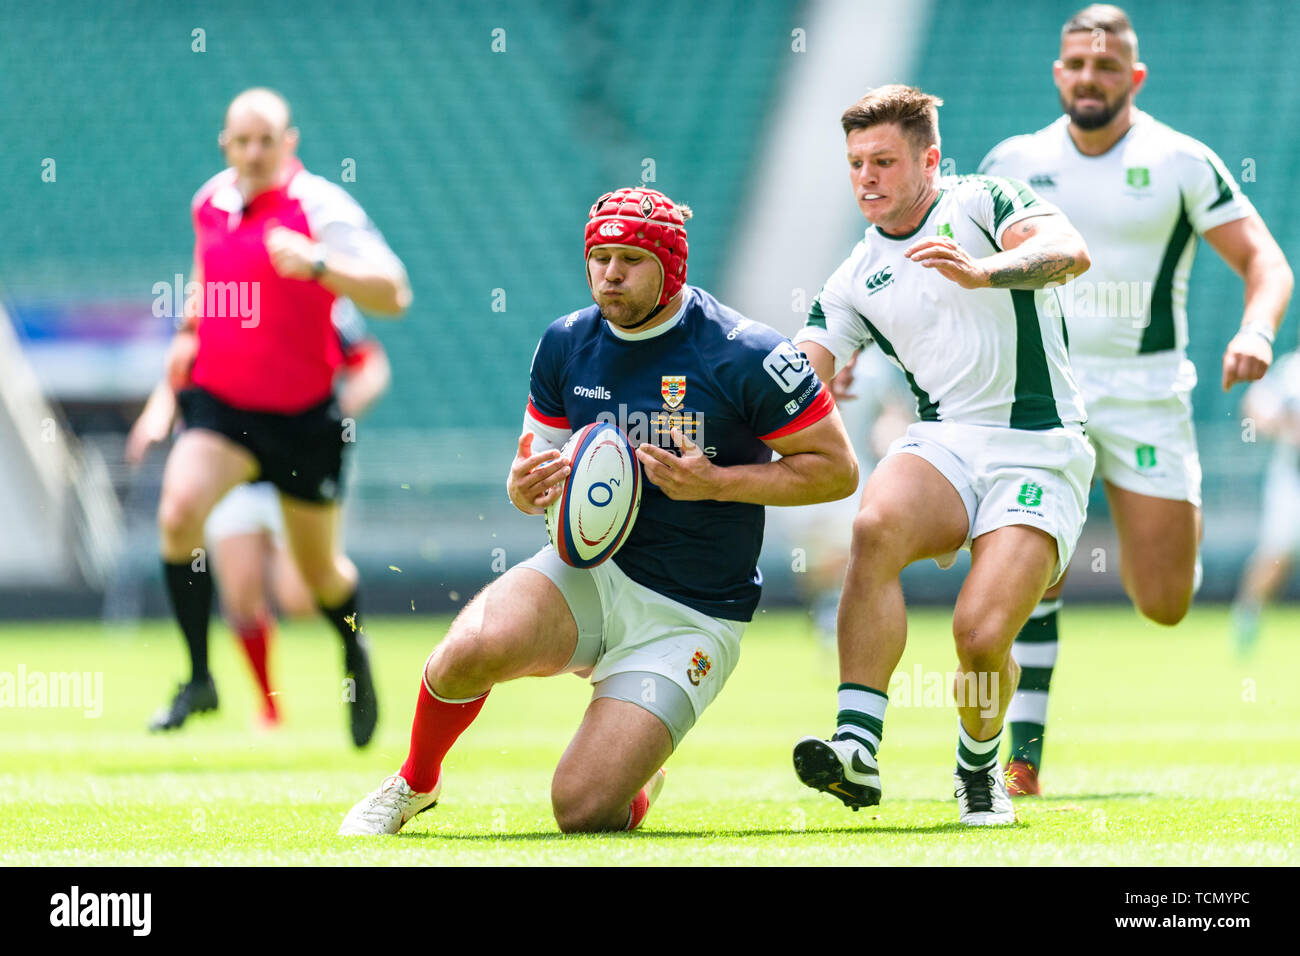 London, UK. 08th, Jun 2019. Peter Weightman of Cumbria is tackled during Bill Beaumont County Championship Division 3 Final match betwee Cumbria vs Dorset & Wilts at Twickenham Stadium on Saturday, 08 June 2019. LONDON England .  (Editorial use only, license required for commercial use. No use in betting, games or a single club/league/player publications.) Credit: Taka G Wu/Alamy Live News Stock Photo